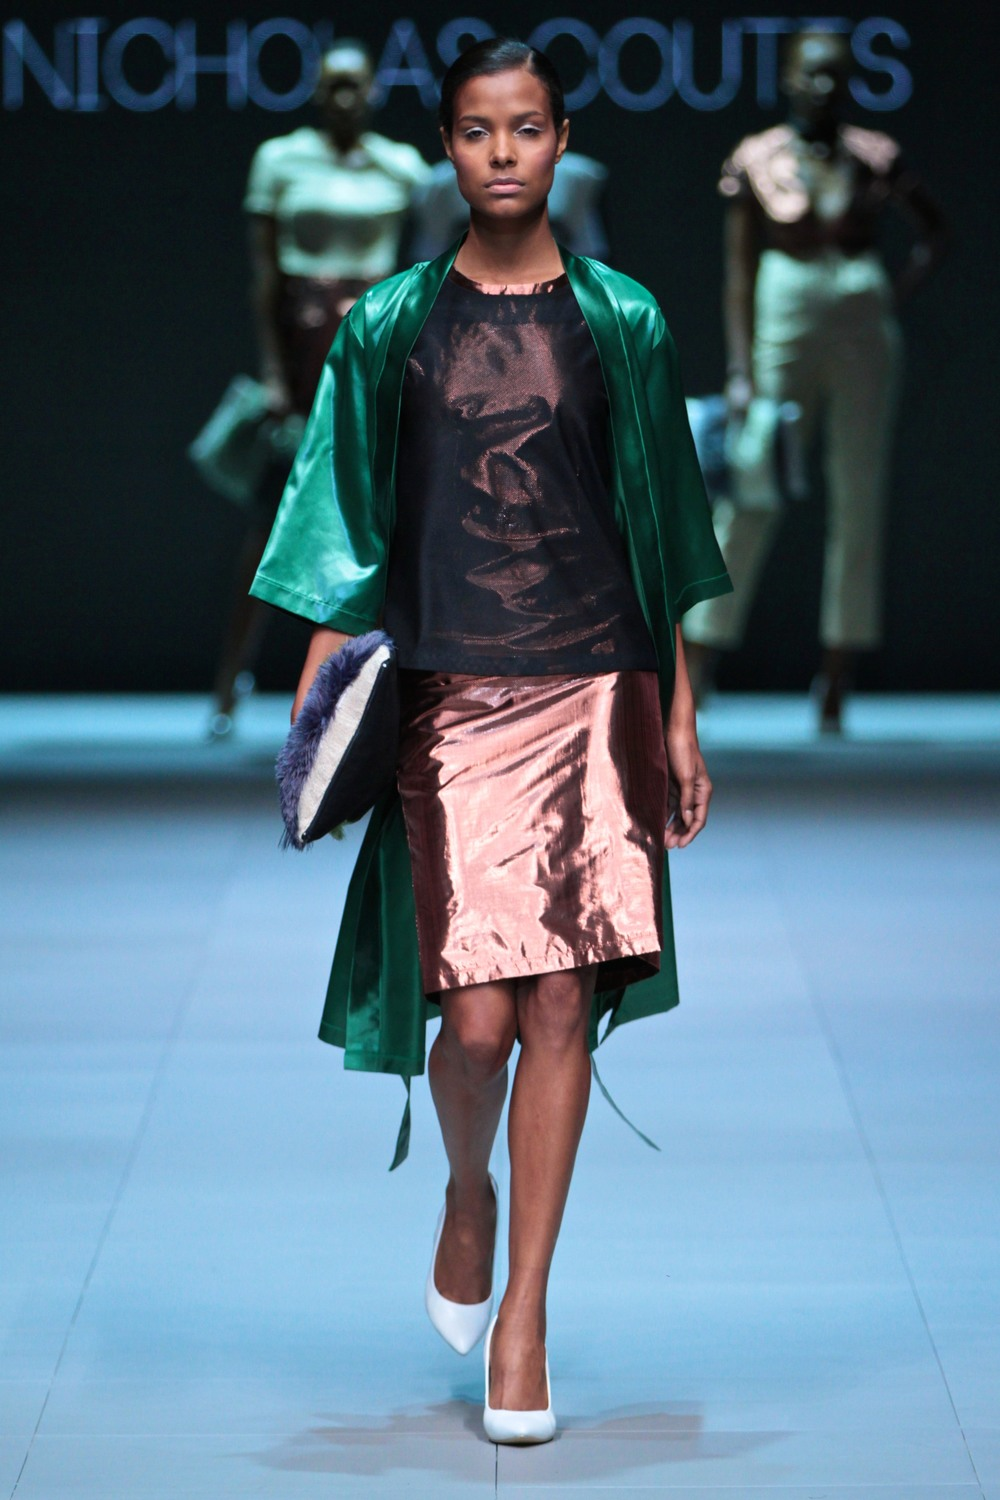 14_MBFWCT_SDR_0465_NicholasCoutts.jpg